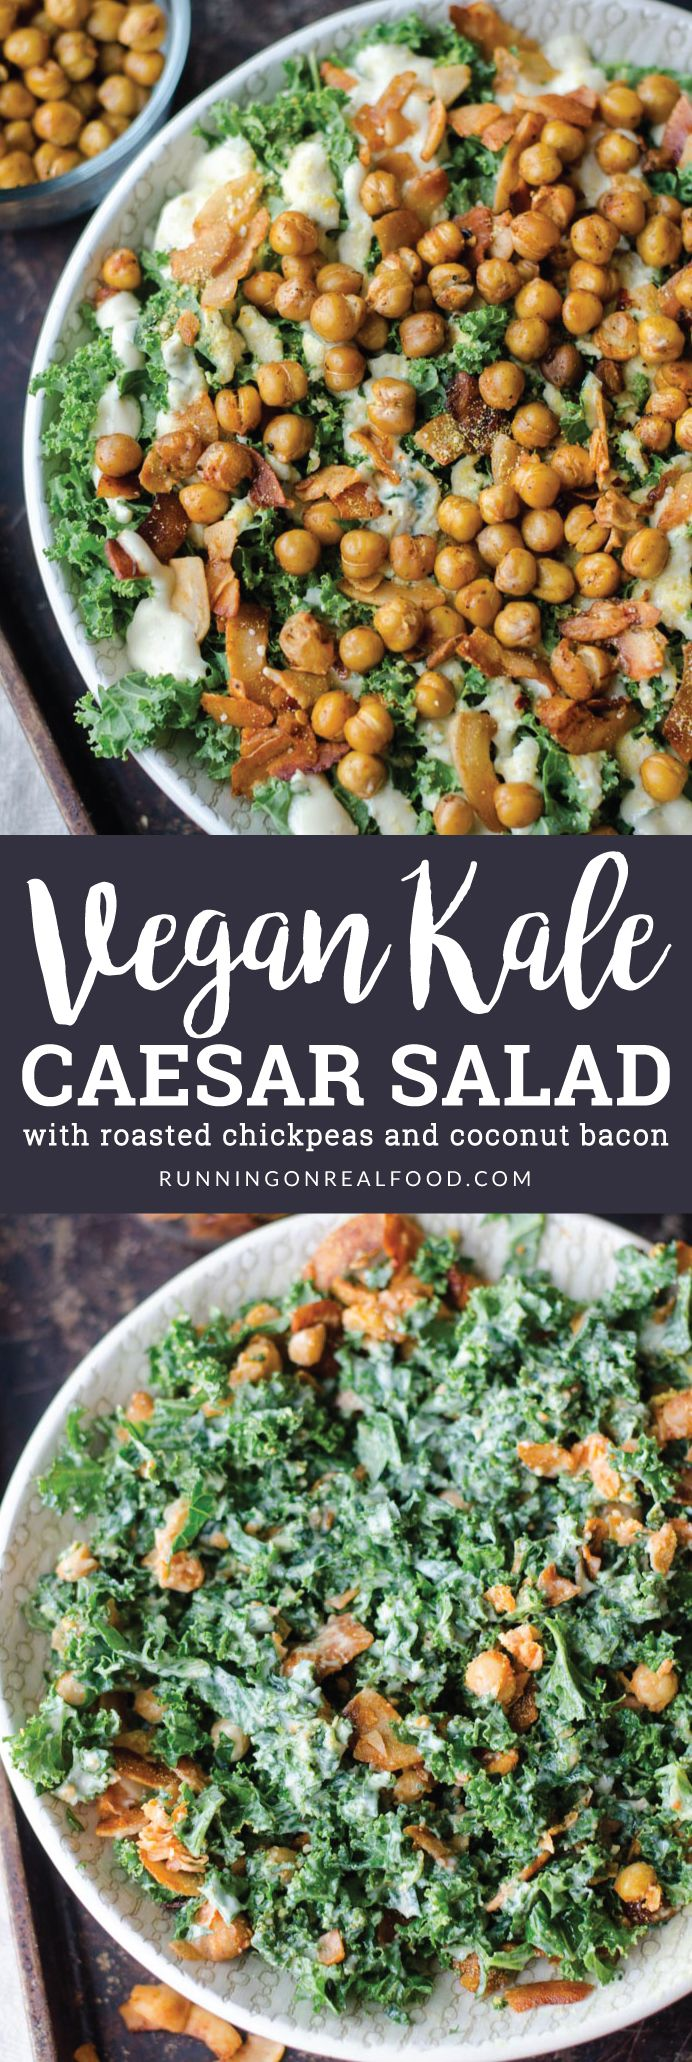 The vegan kale caesar salad with roasted chickpeas and coconut bacon is healthy, gluten-free and tastes incredible. So many textures and flavours! Easy to make with simple ingredients. Dressing is tofu based, nut-free and oil-free.